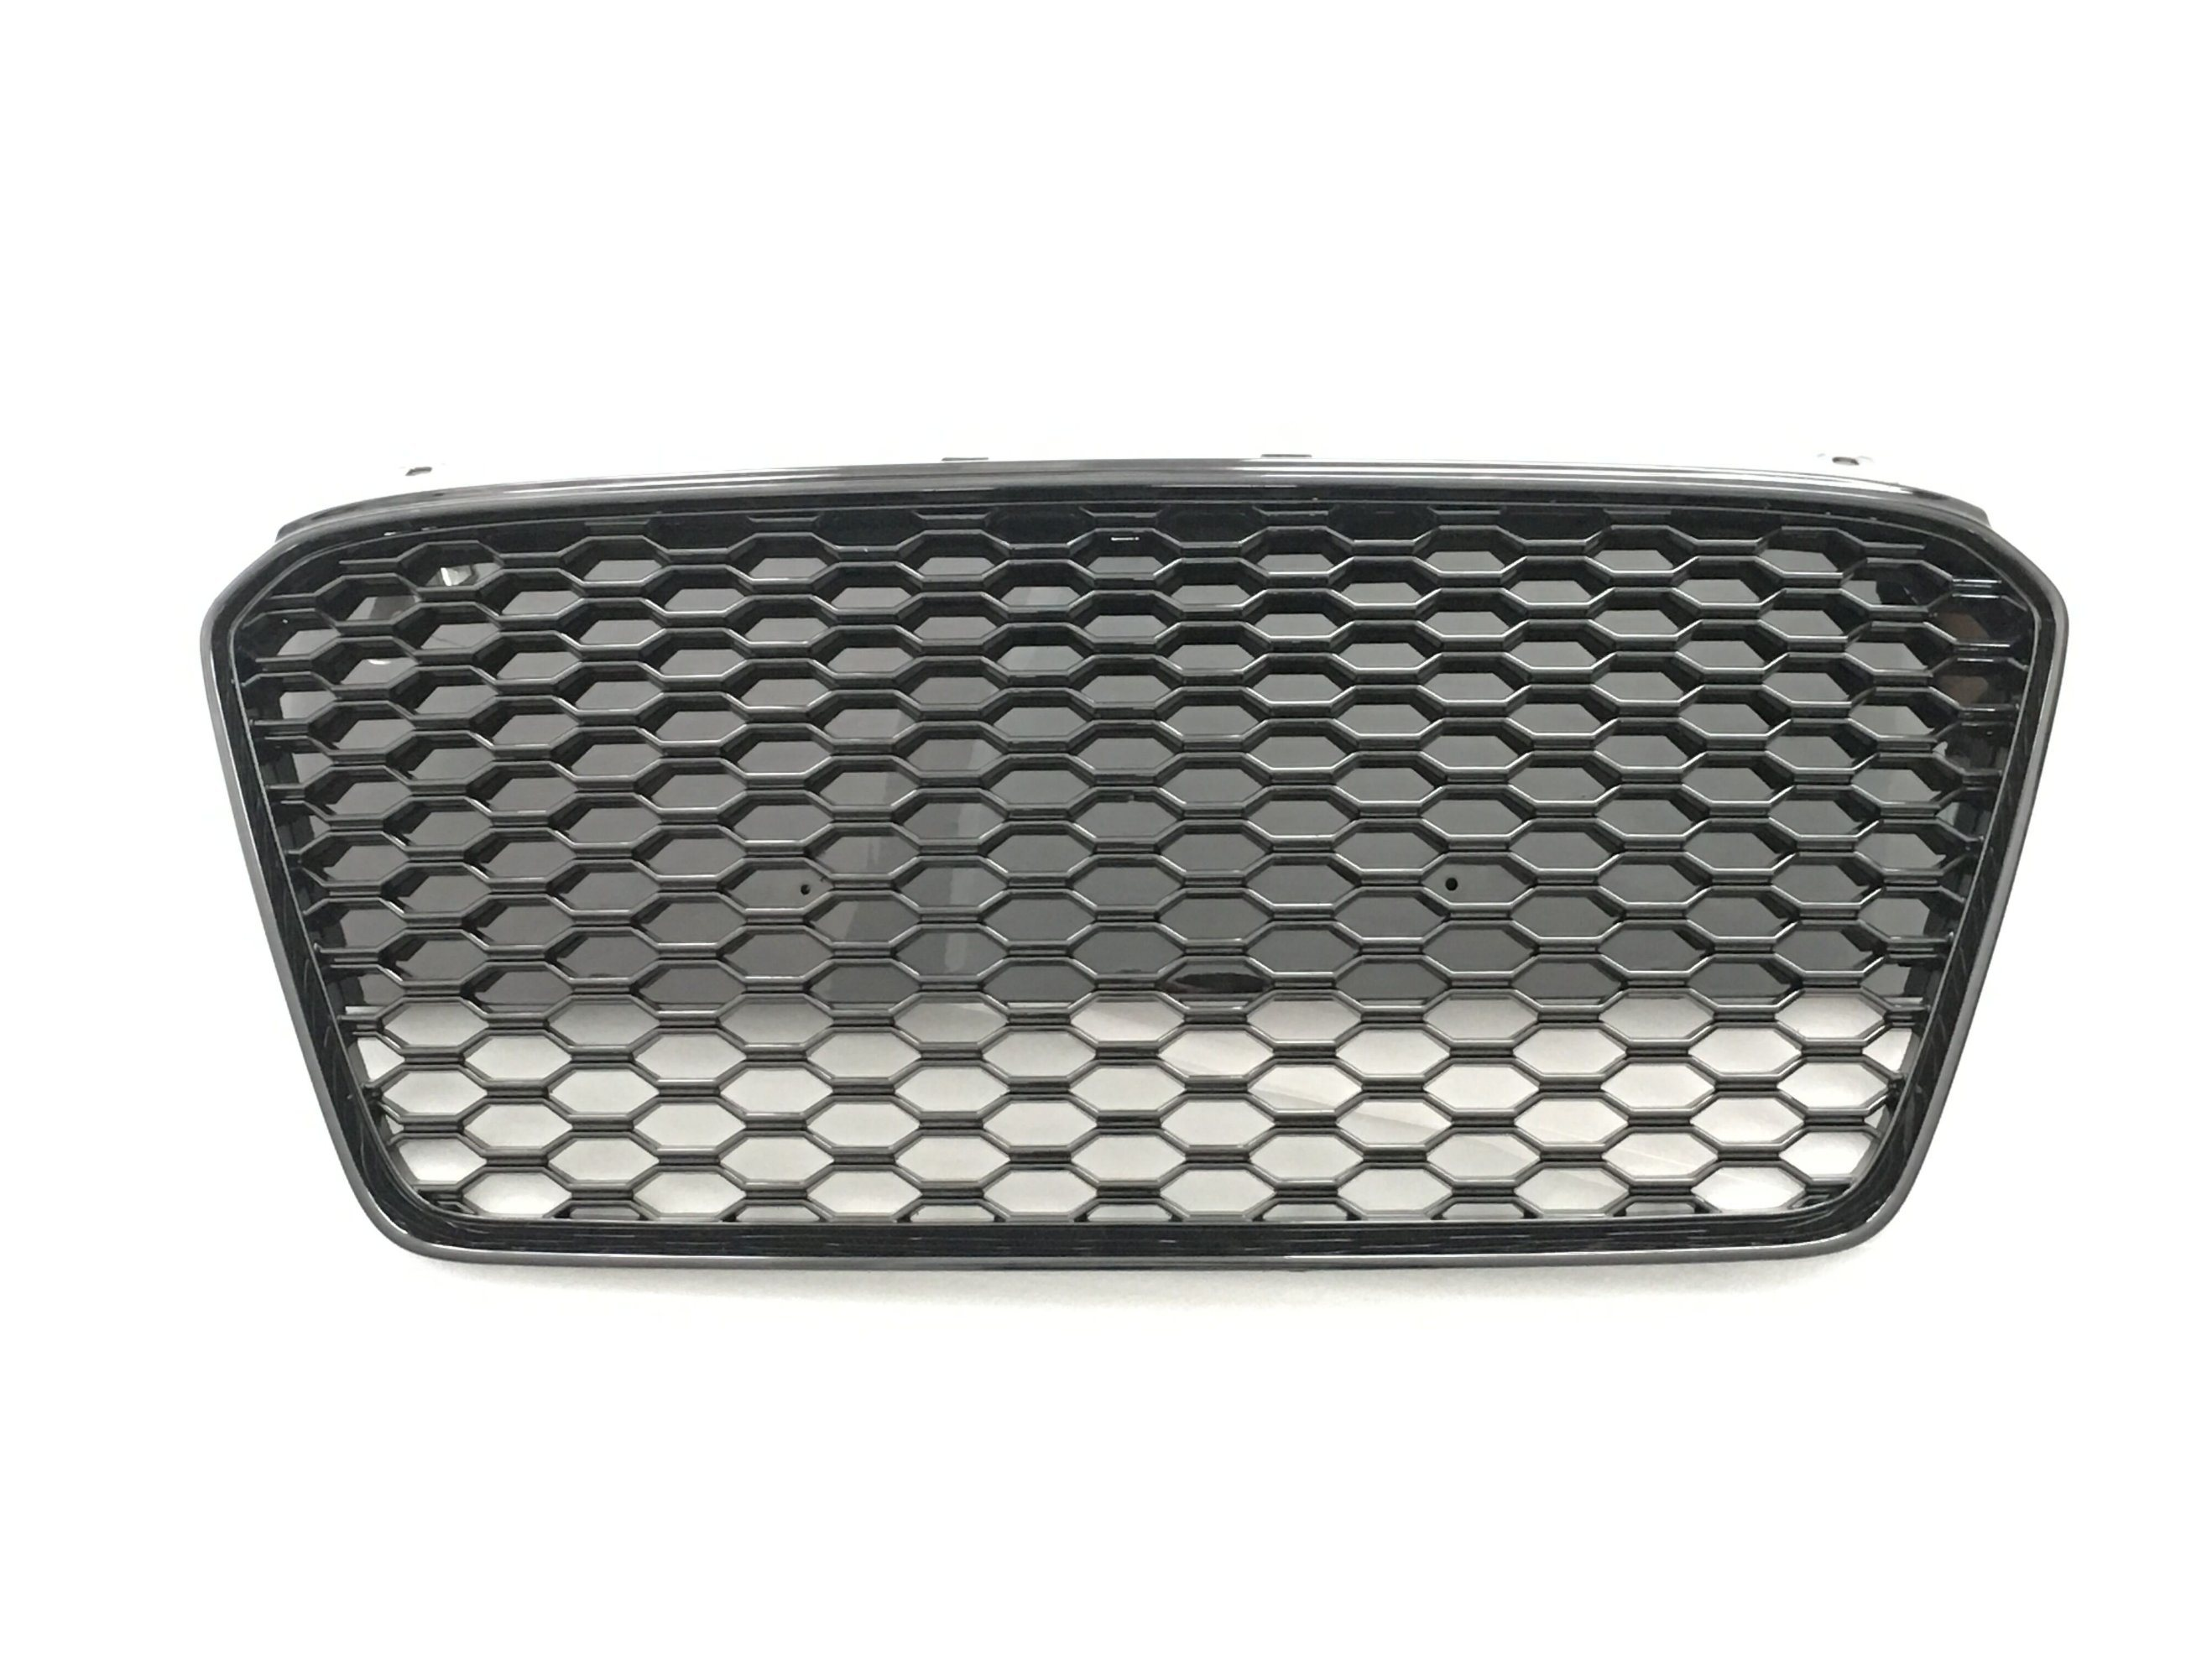 [Hot Item] R8 Front Grille Honeycomb Mesh for Audi R8, Aftermarket Parts,  Suitbale for Audi R8